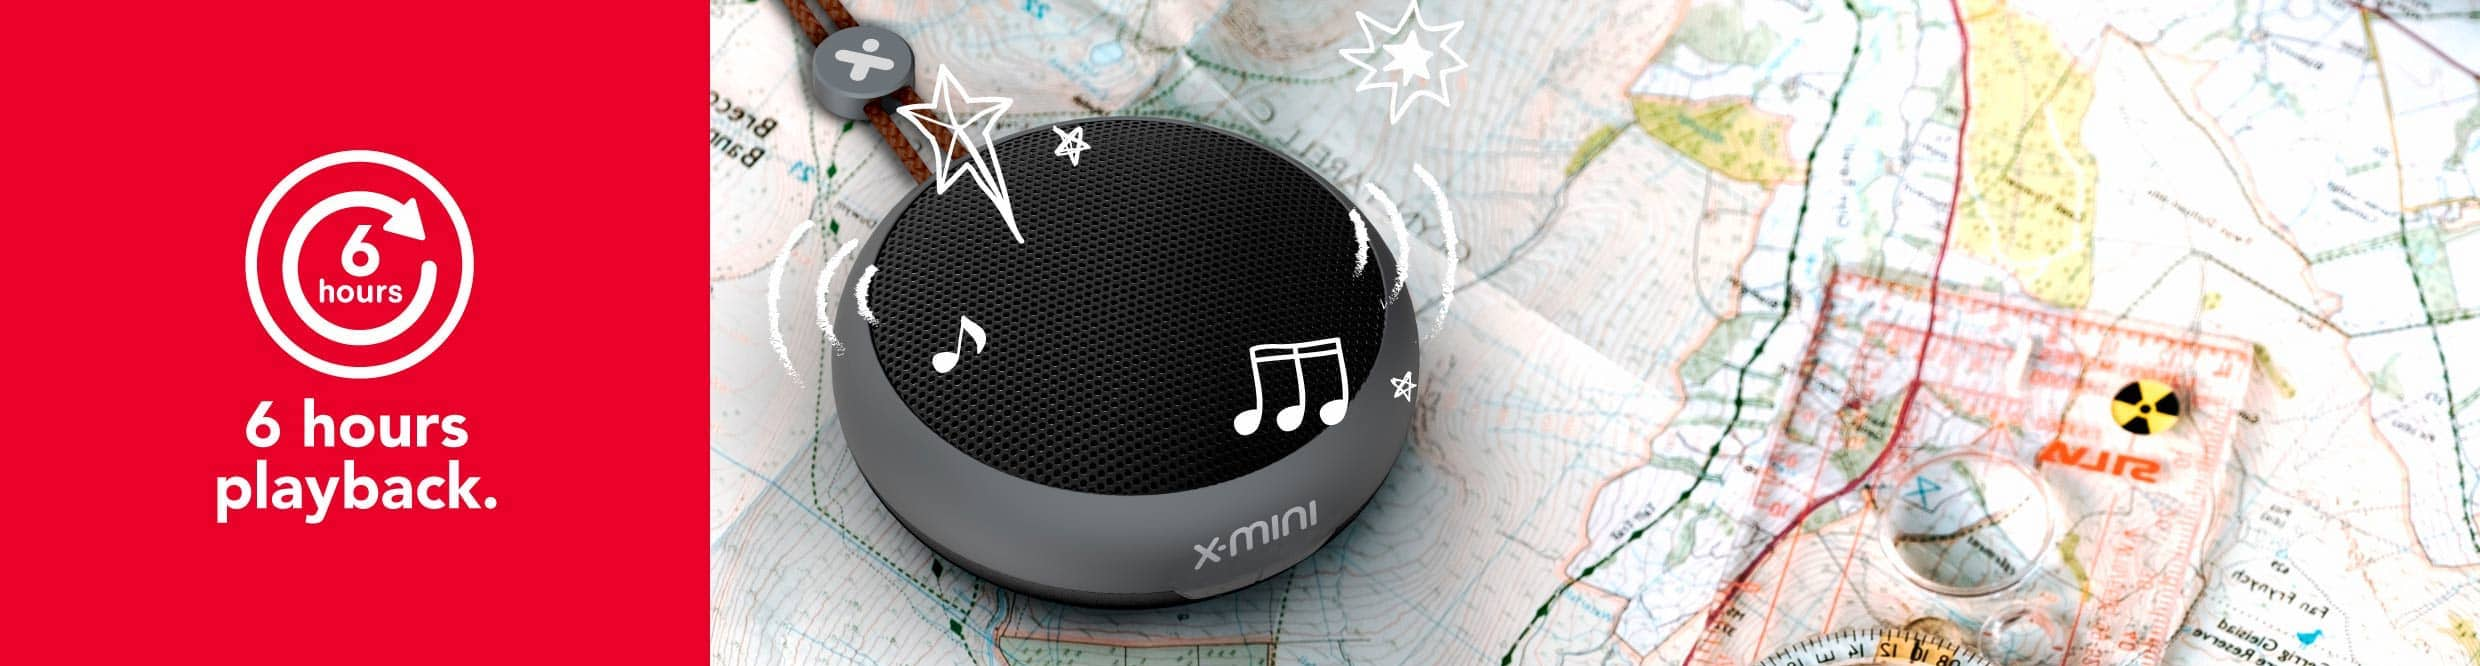 X-mini-Kai-X1-True-Wireless-Bluetooth-Portable-Speaker-6-hours-playback